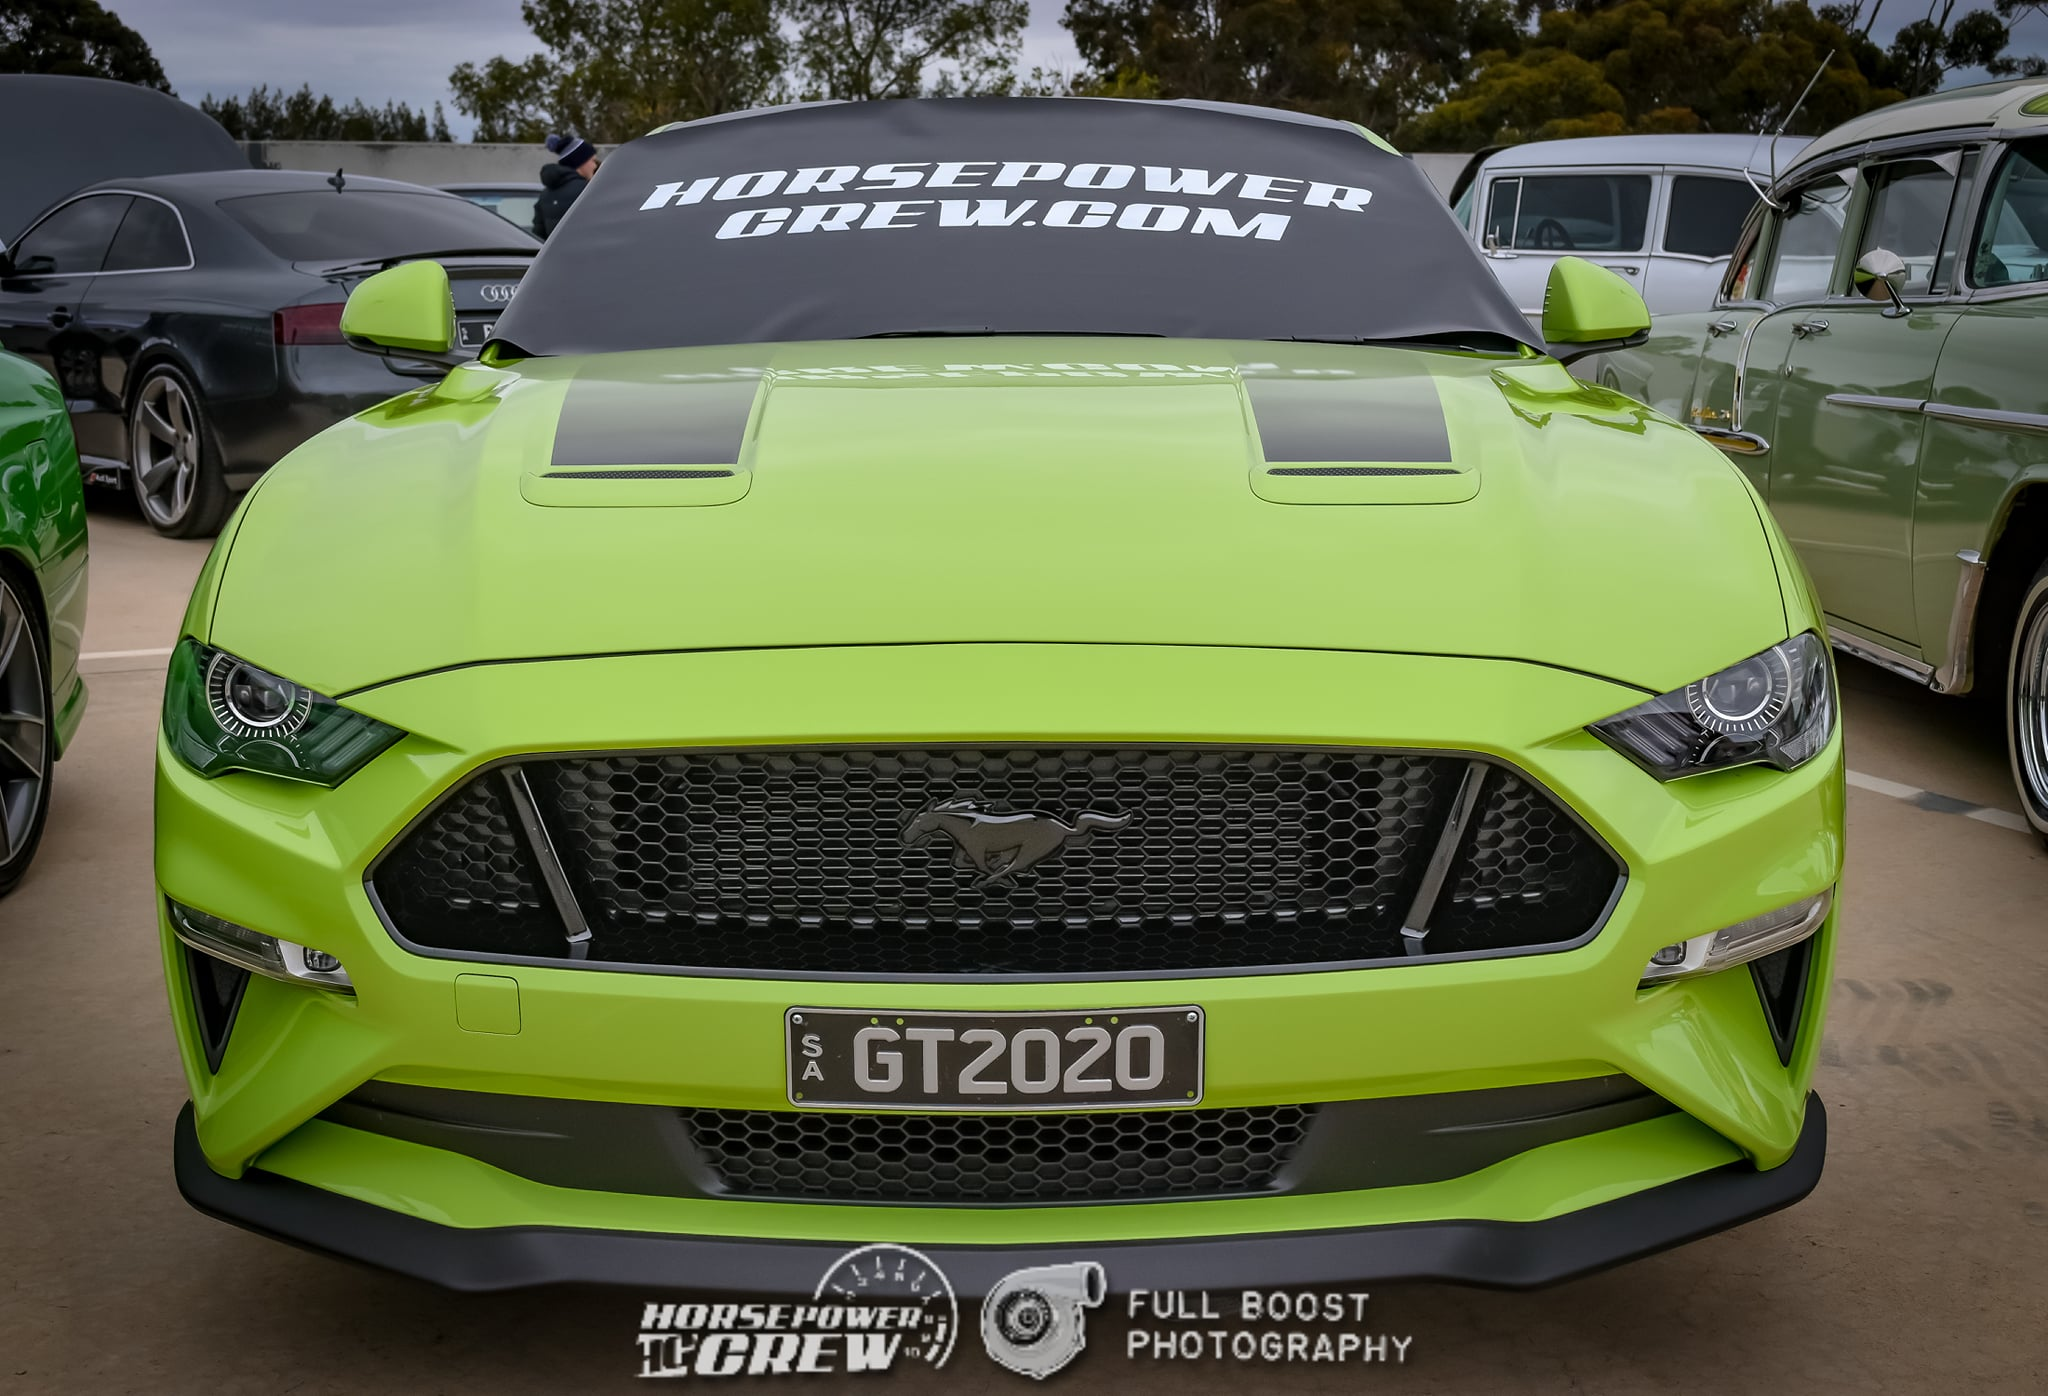 windscreen-cover-dot-com-modern-size-black-with-white-writing-green-mustang